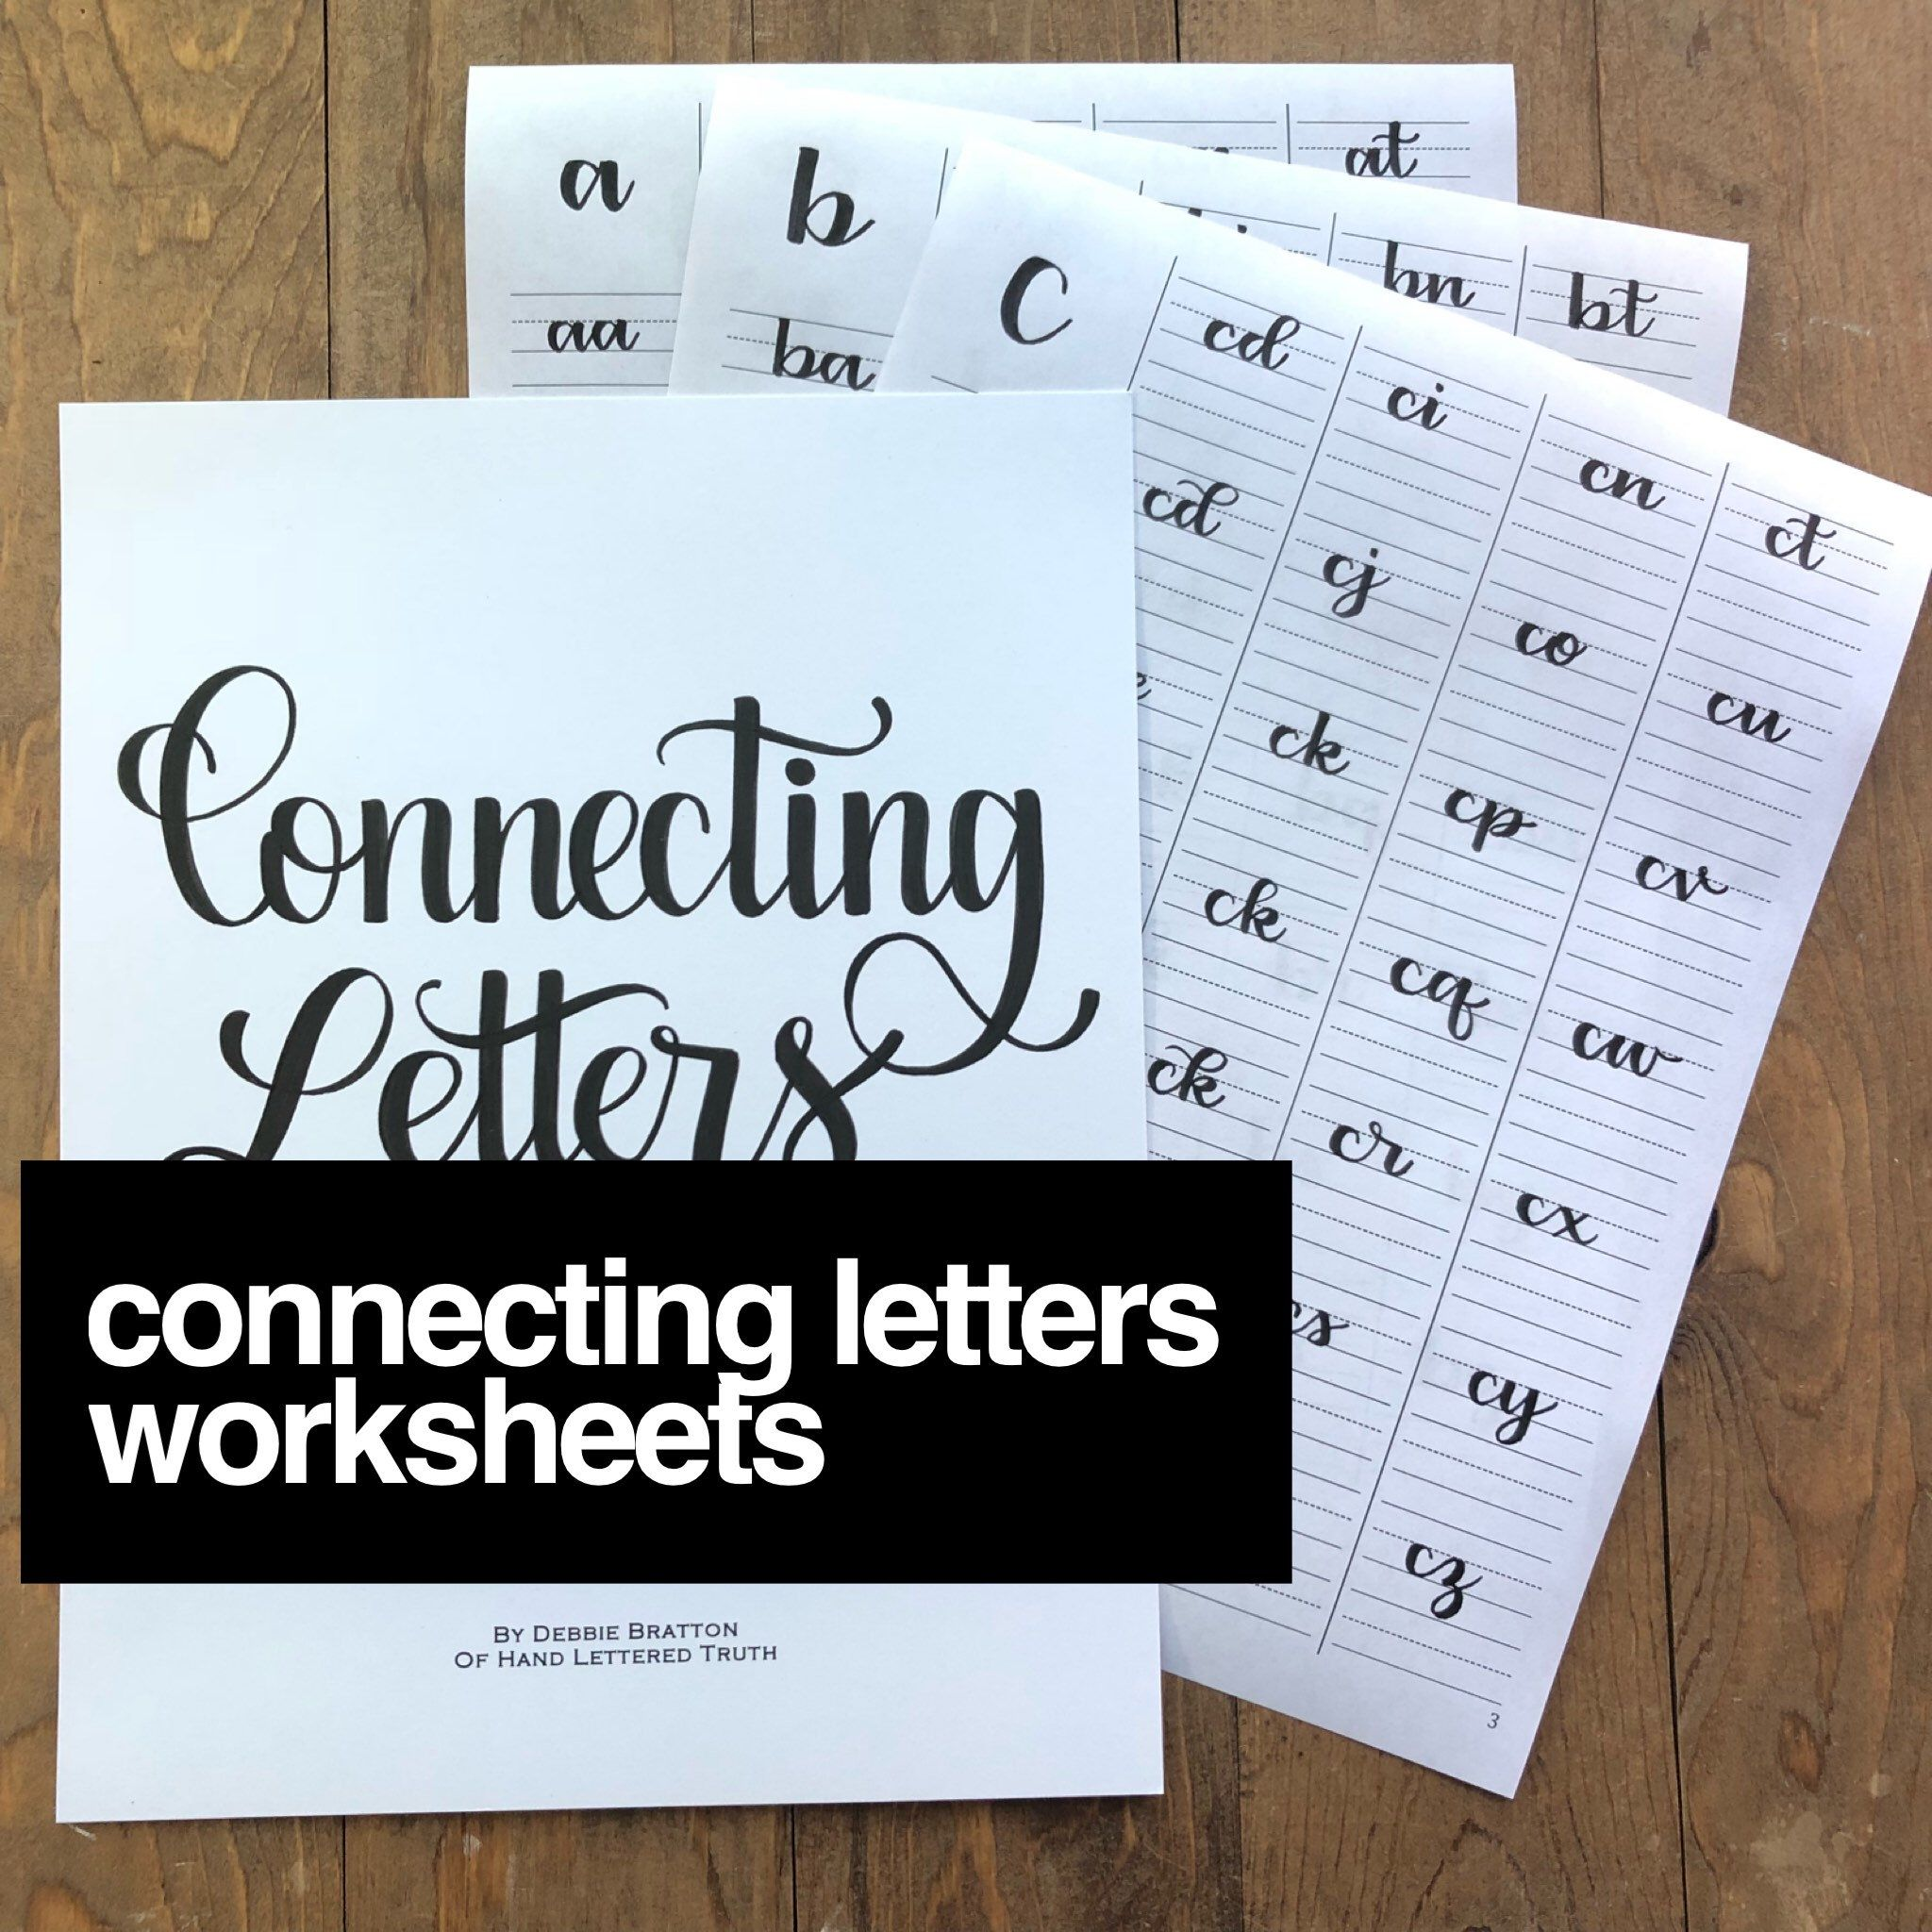 Connecting Letters Worksheets By Handletteredtruth On Etsy